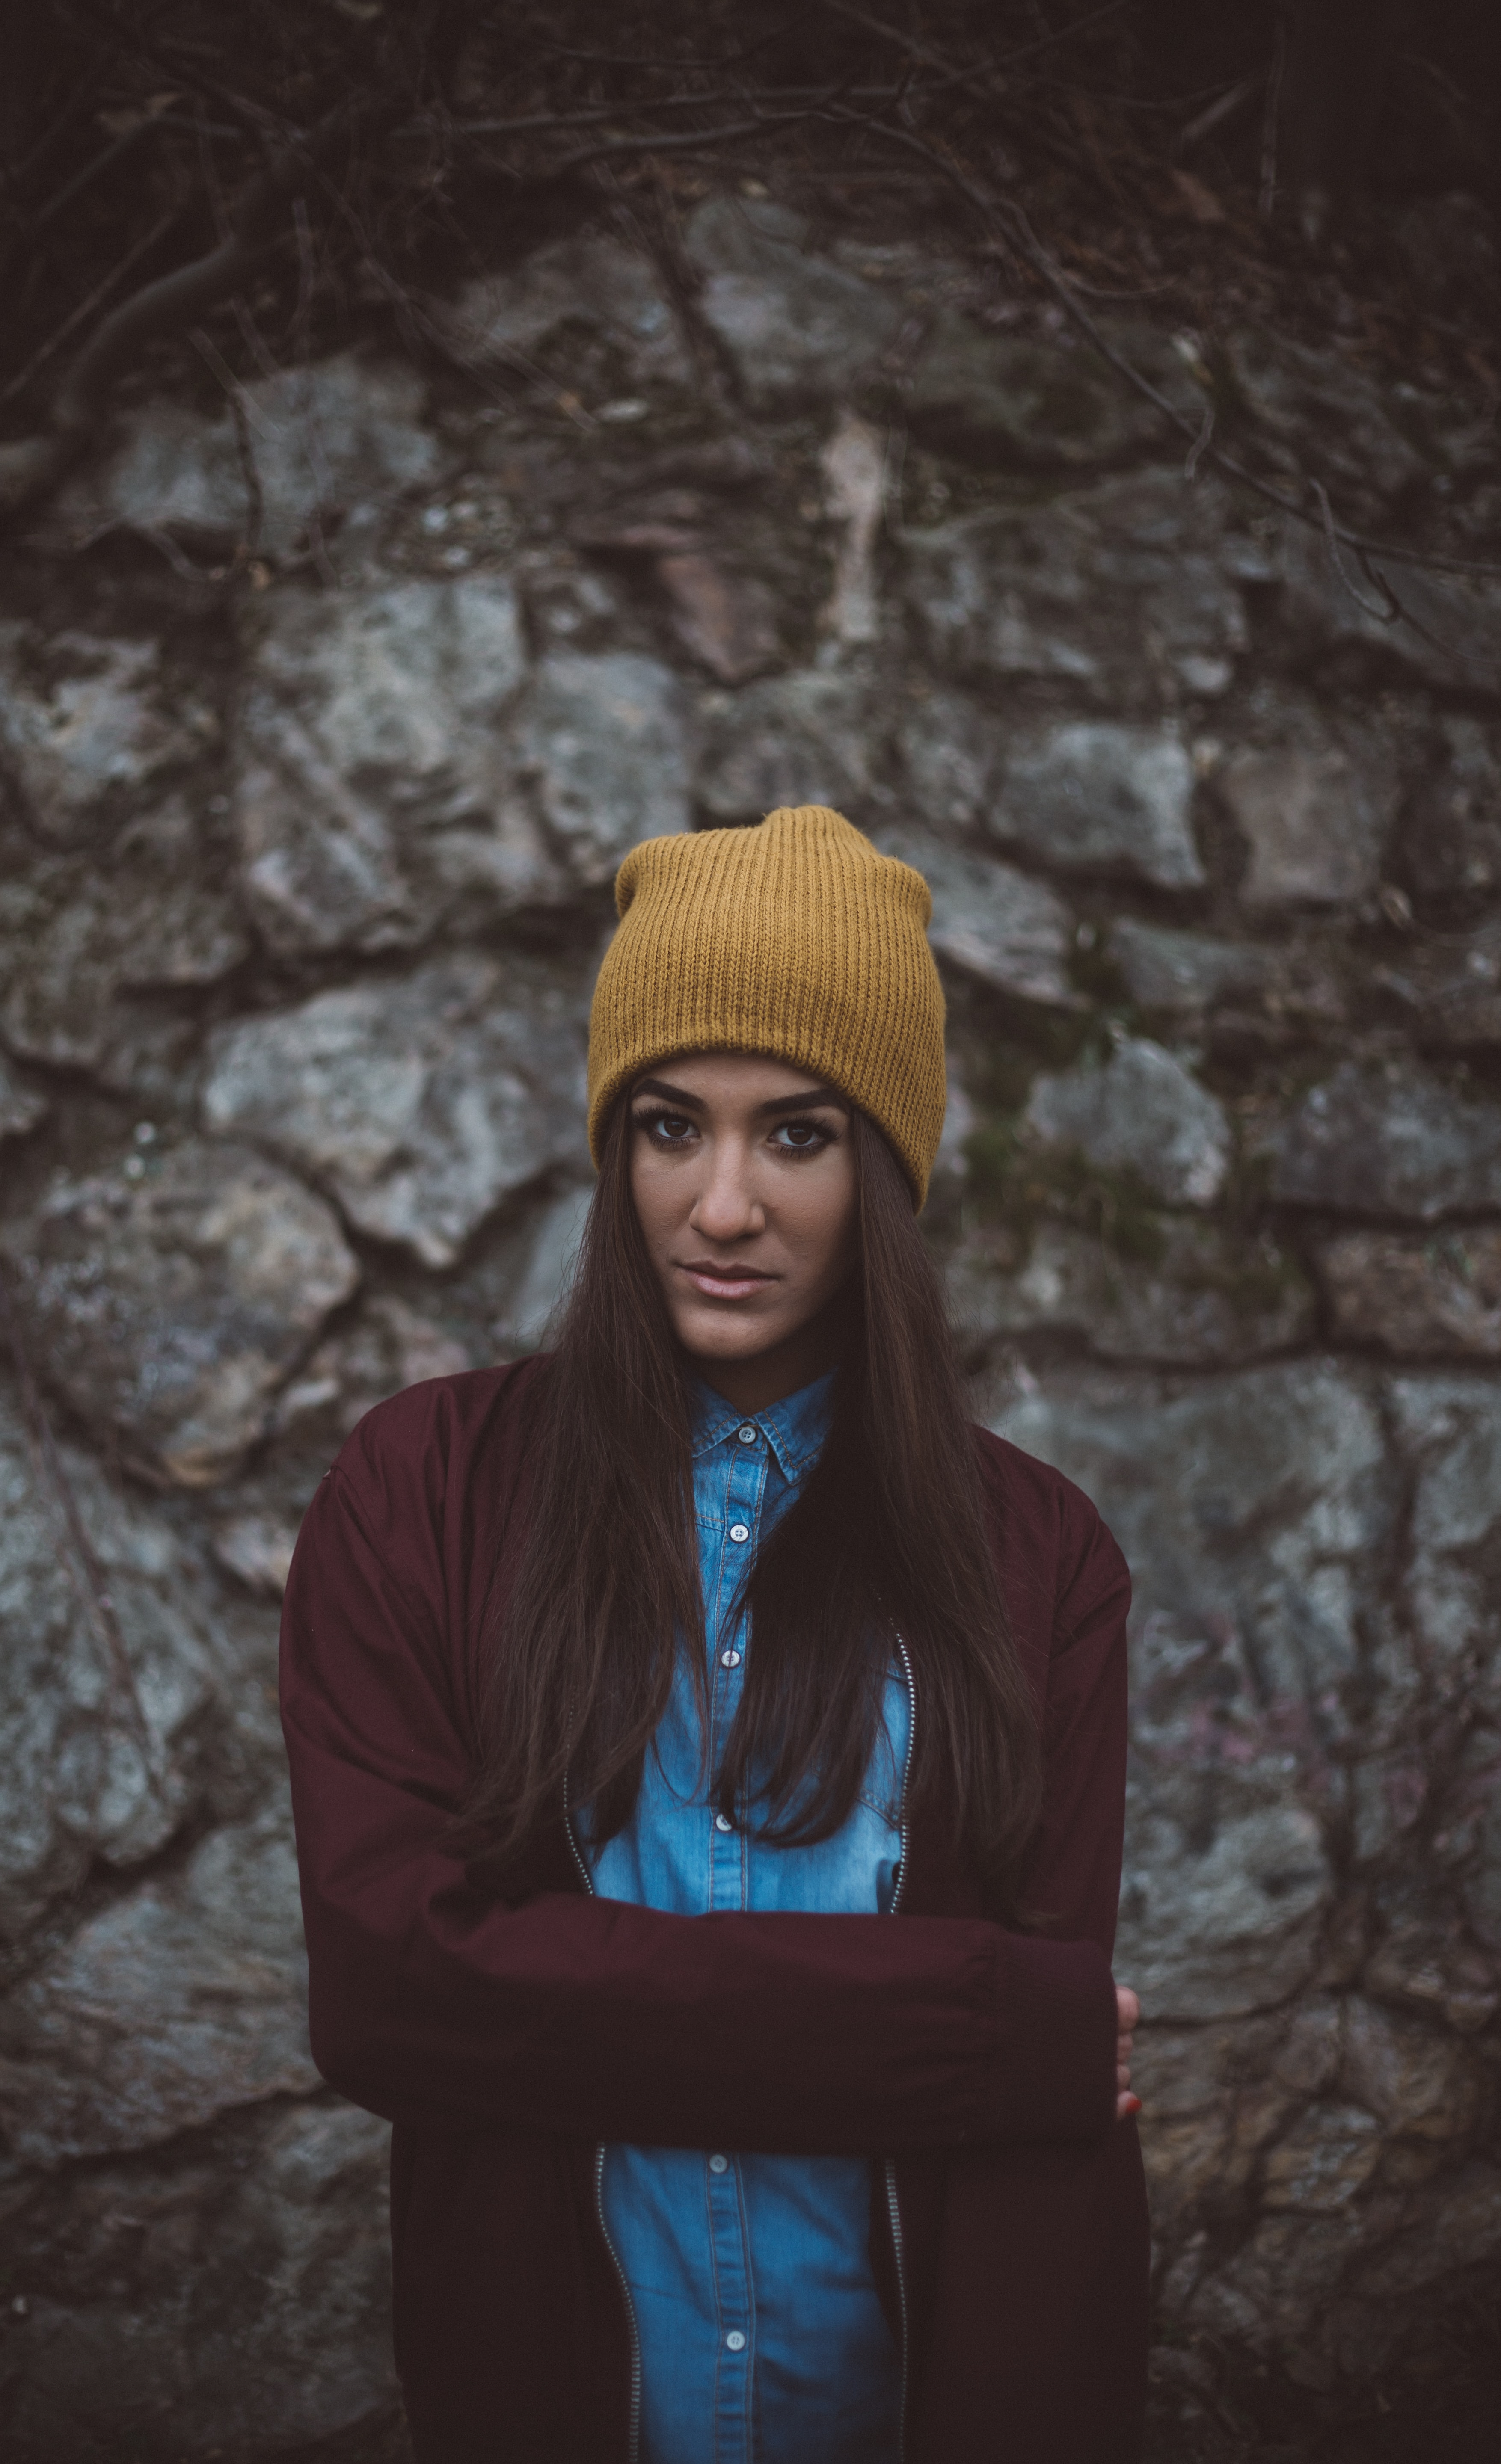 A woman in a brown beanie and maroon jacket against a stone wall in Hungary.